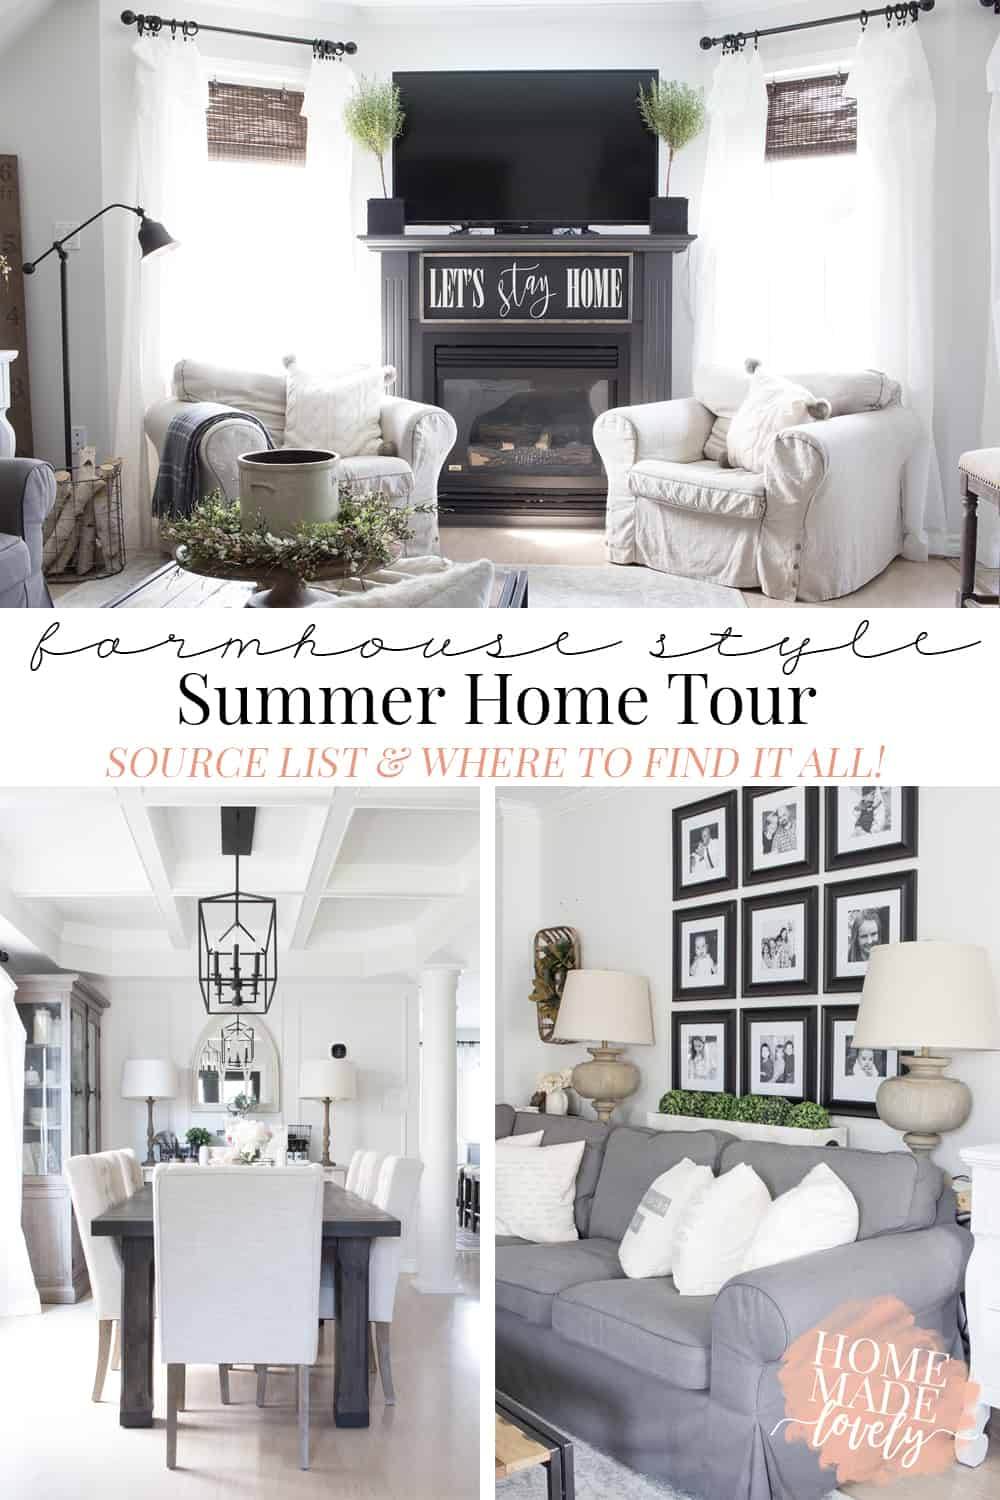 Love farmhouse style? Here's the source list for the farmhouse style summer home tour of our living room and dining room.